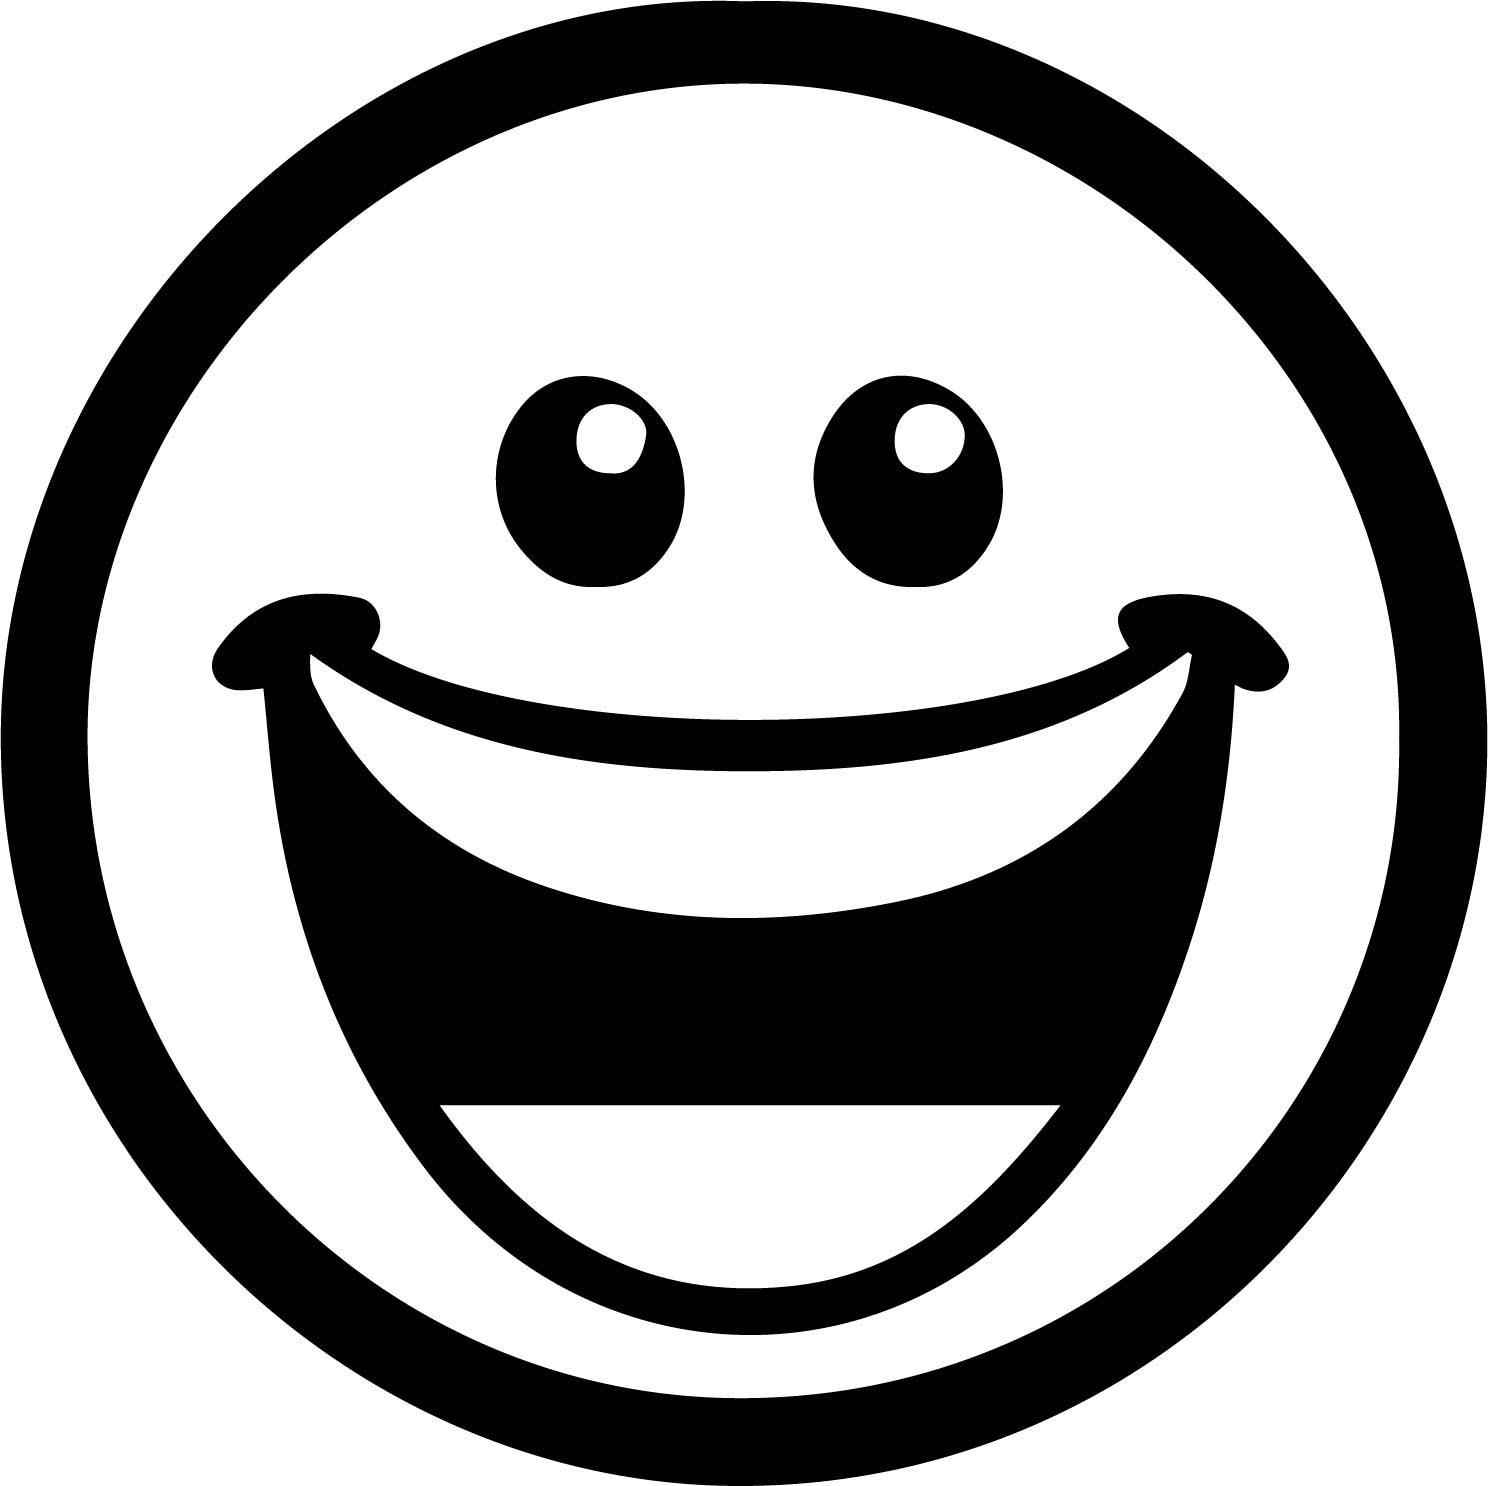 Next Emoticon Laughing Face Coloring Page